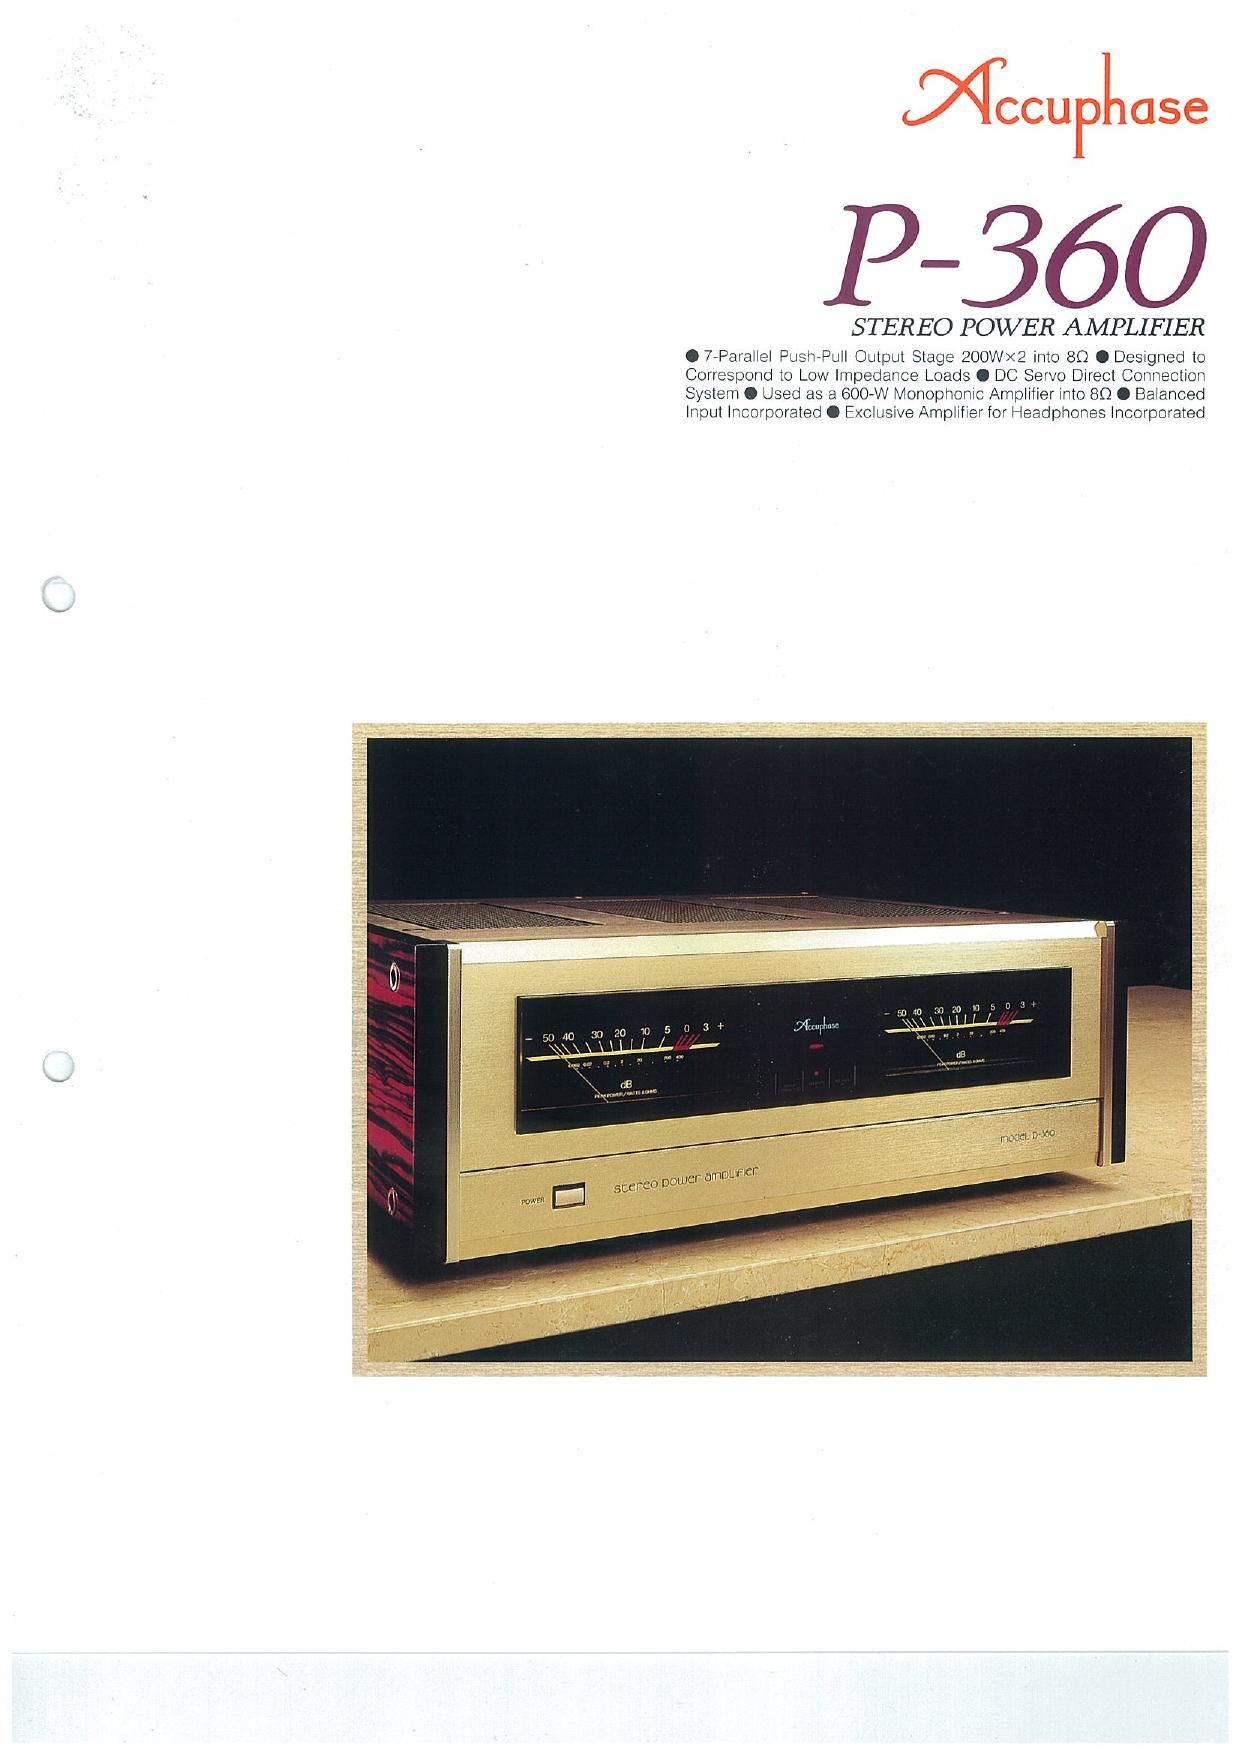 Accuphase P 360 Brochure